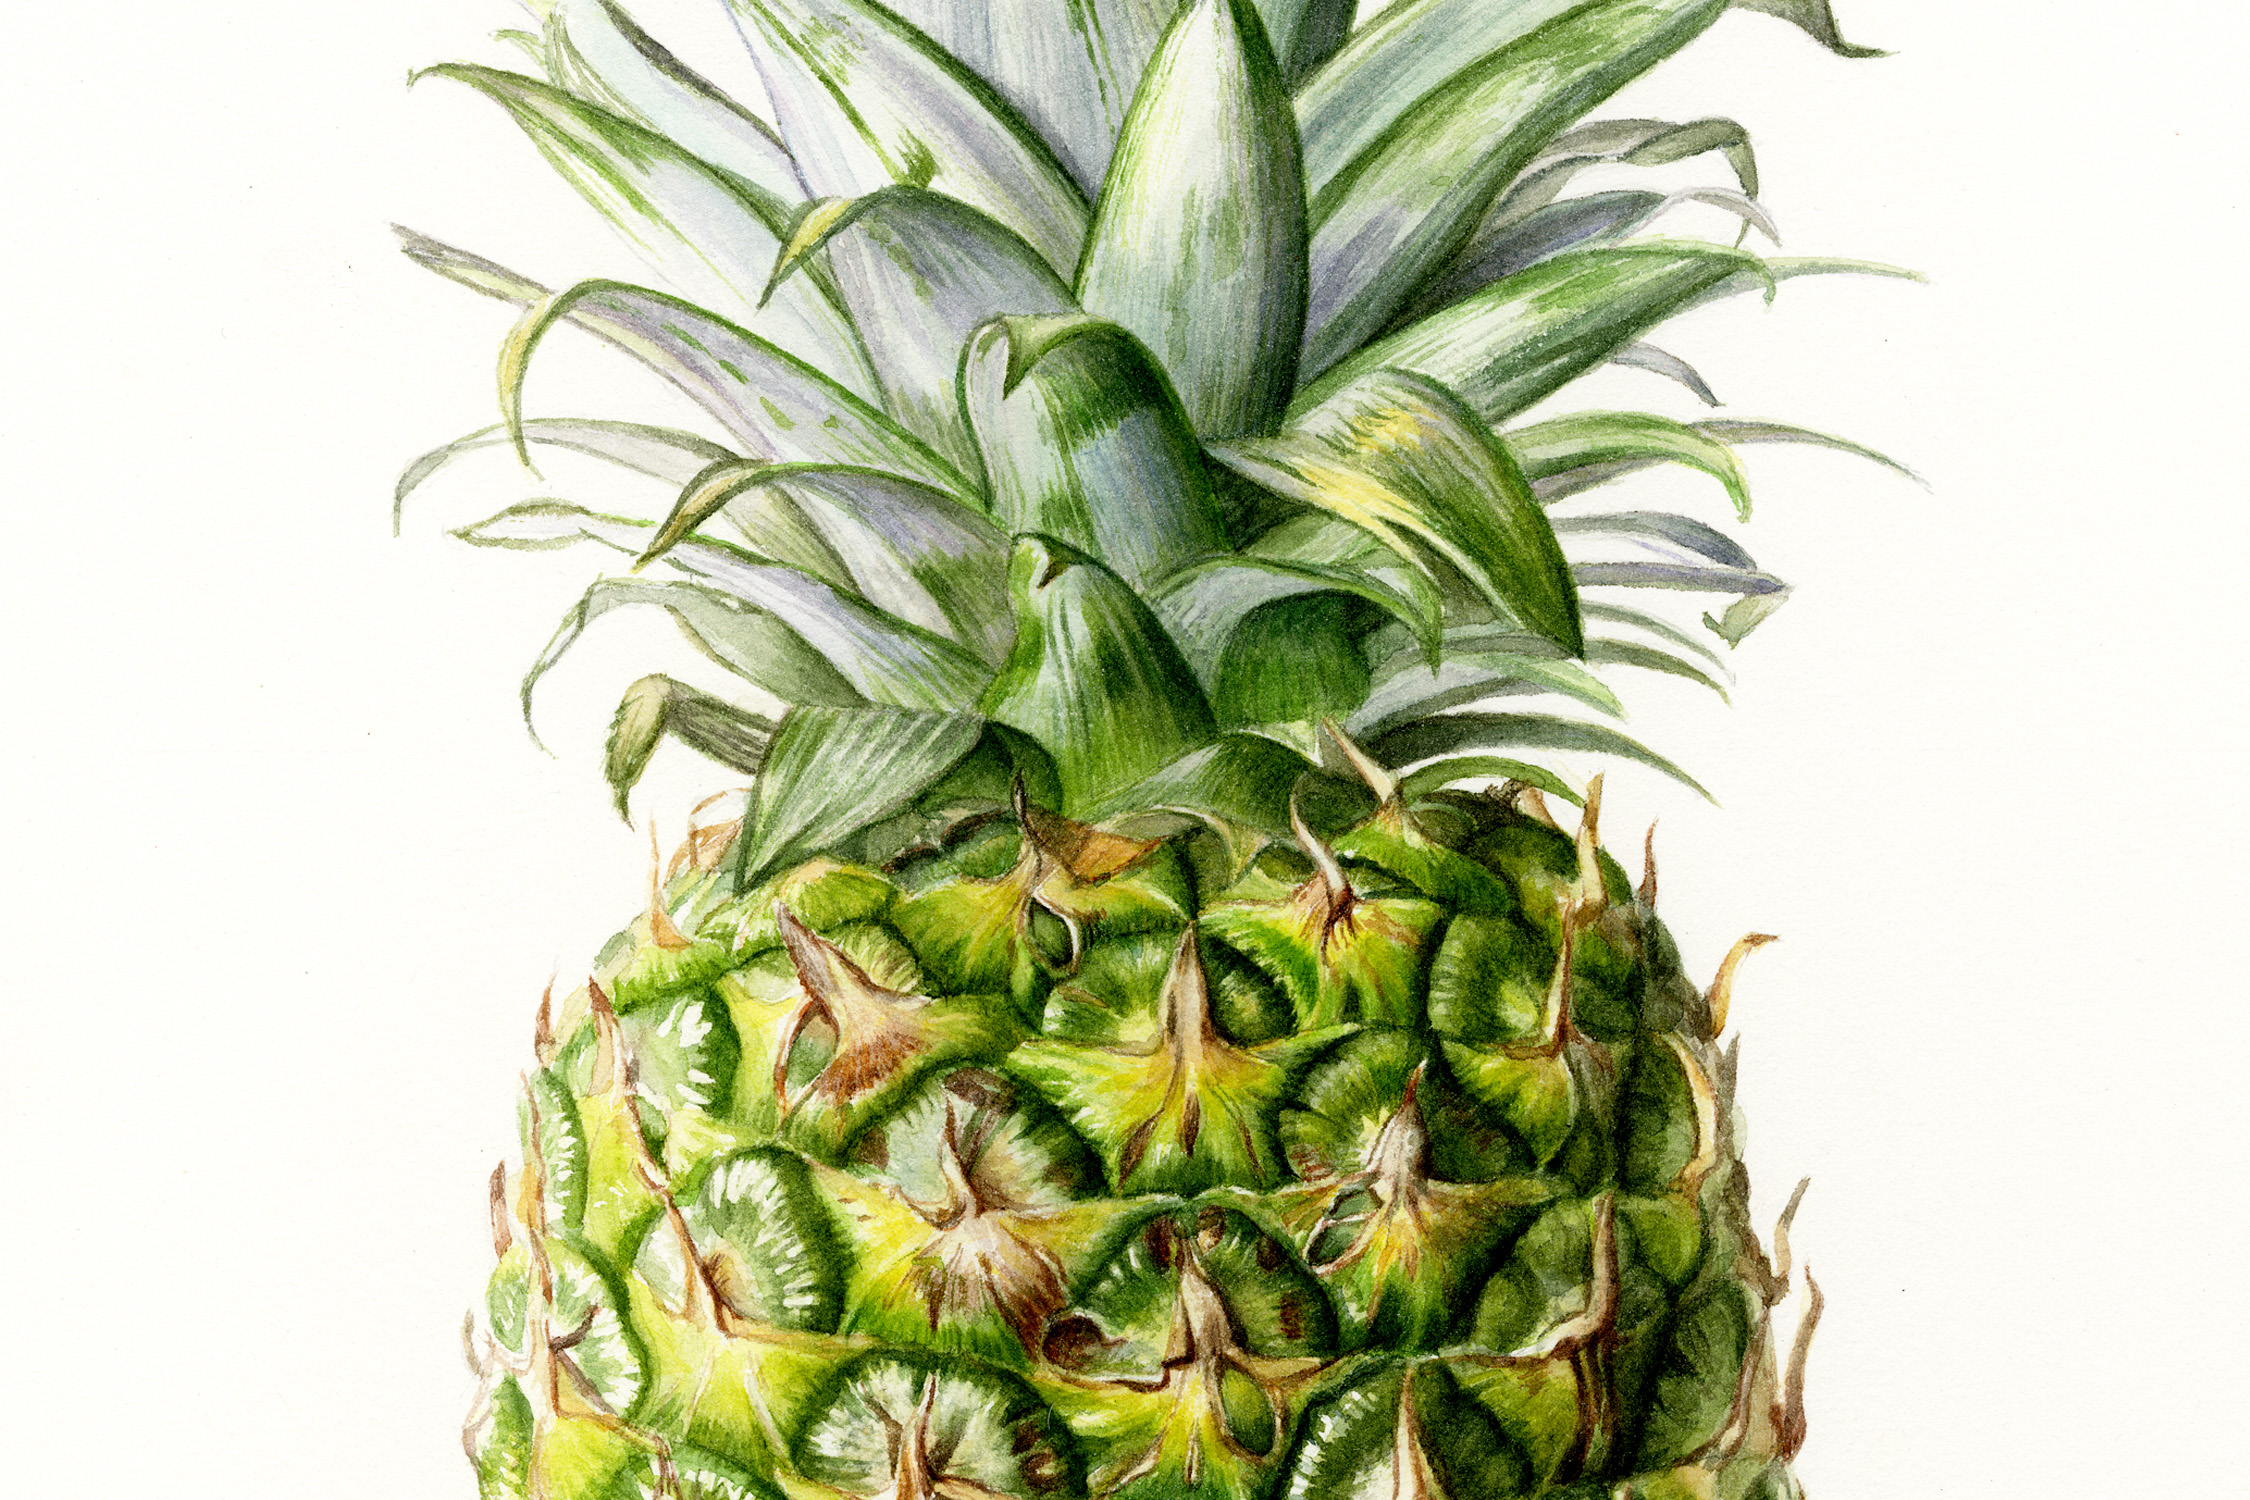 lr-pineapple closeup.jpg